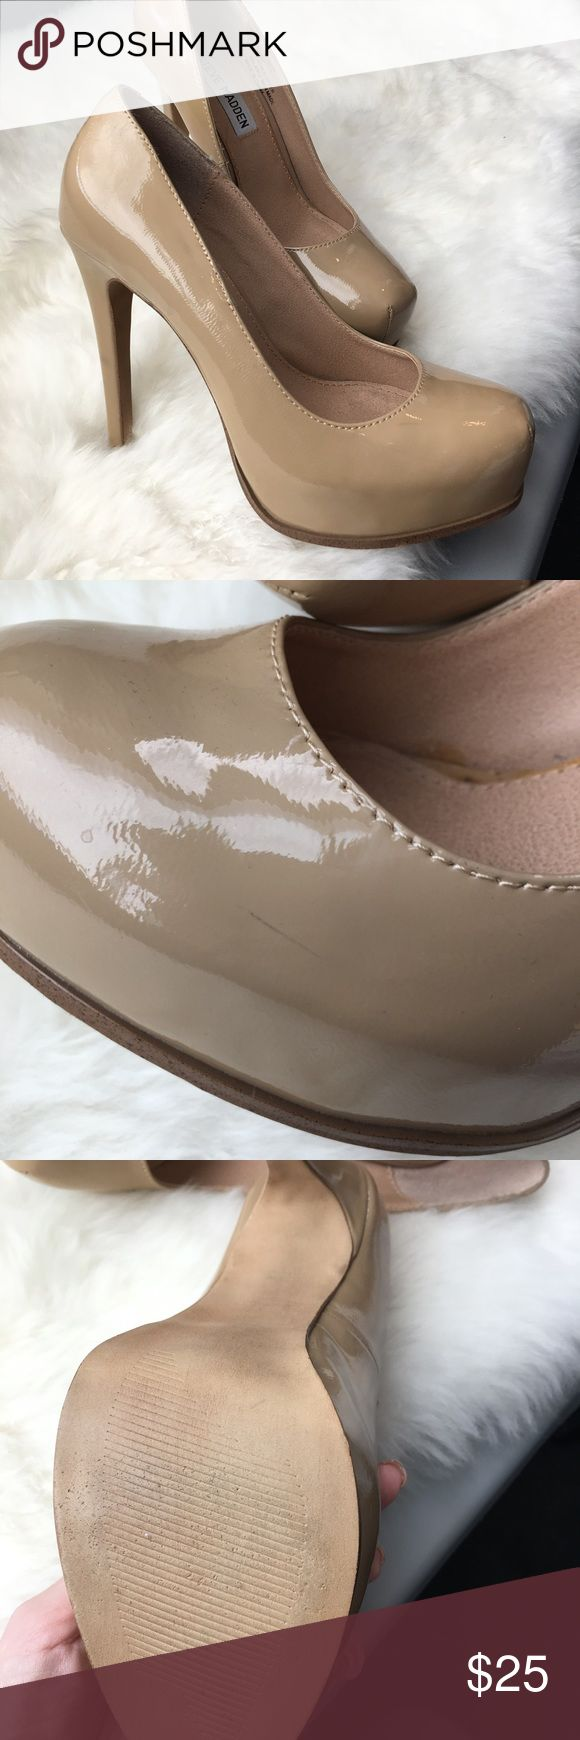 Steve Madden Nude Pumps Nude Steve Madden Pumps size 5.5. Worn only twice but has a few wear marks as seen in photos 🌙✨ Steve Madden Shoes Heels